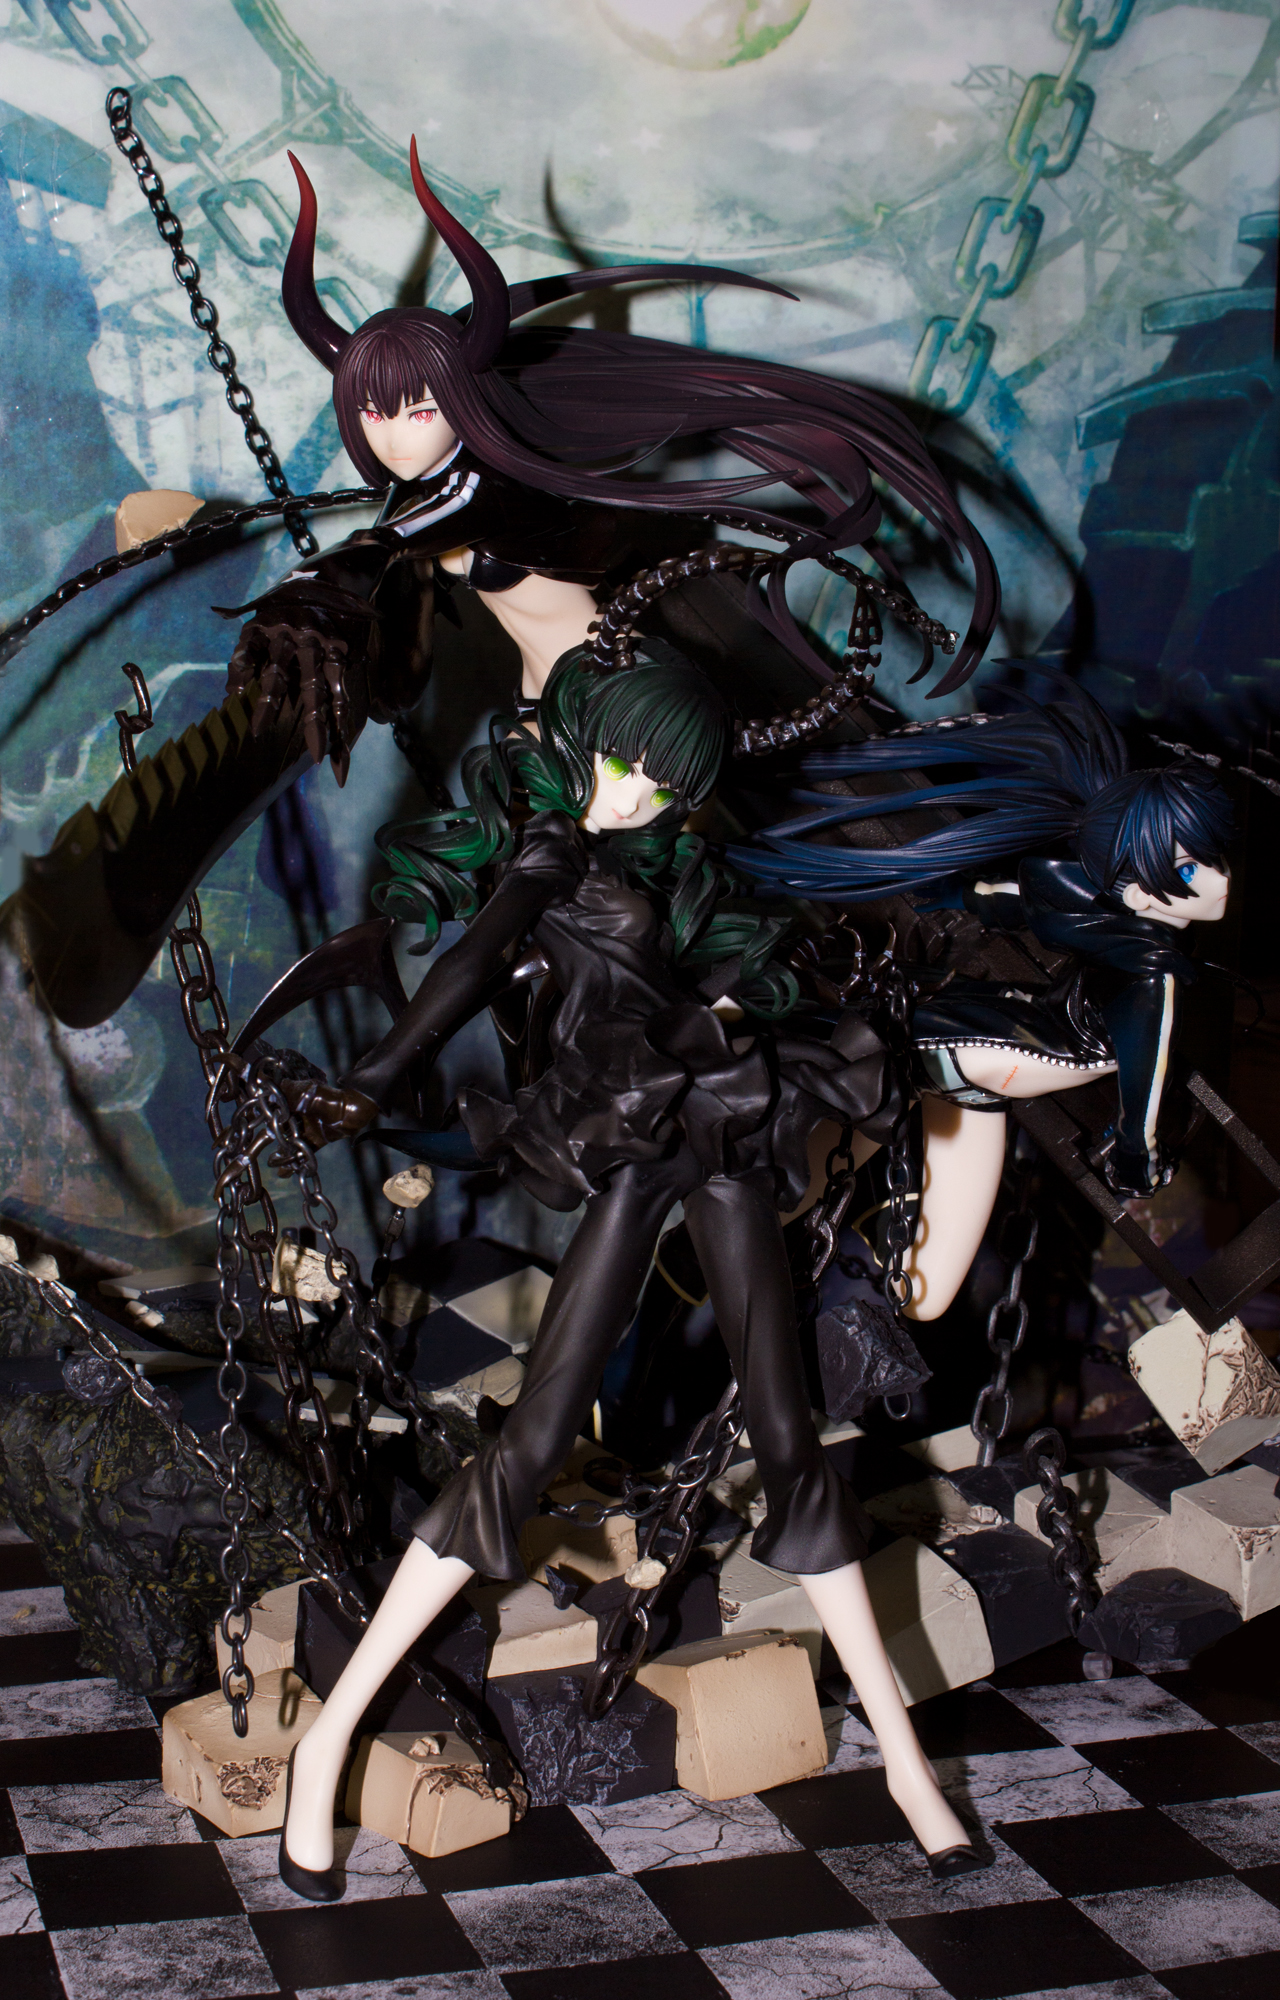 good_smile_company dead_master akeji black_★_rock_shooter kawanishi_ken black_★_gold_saw